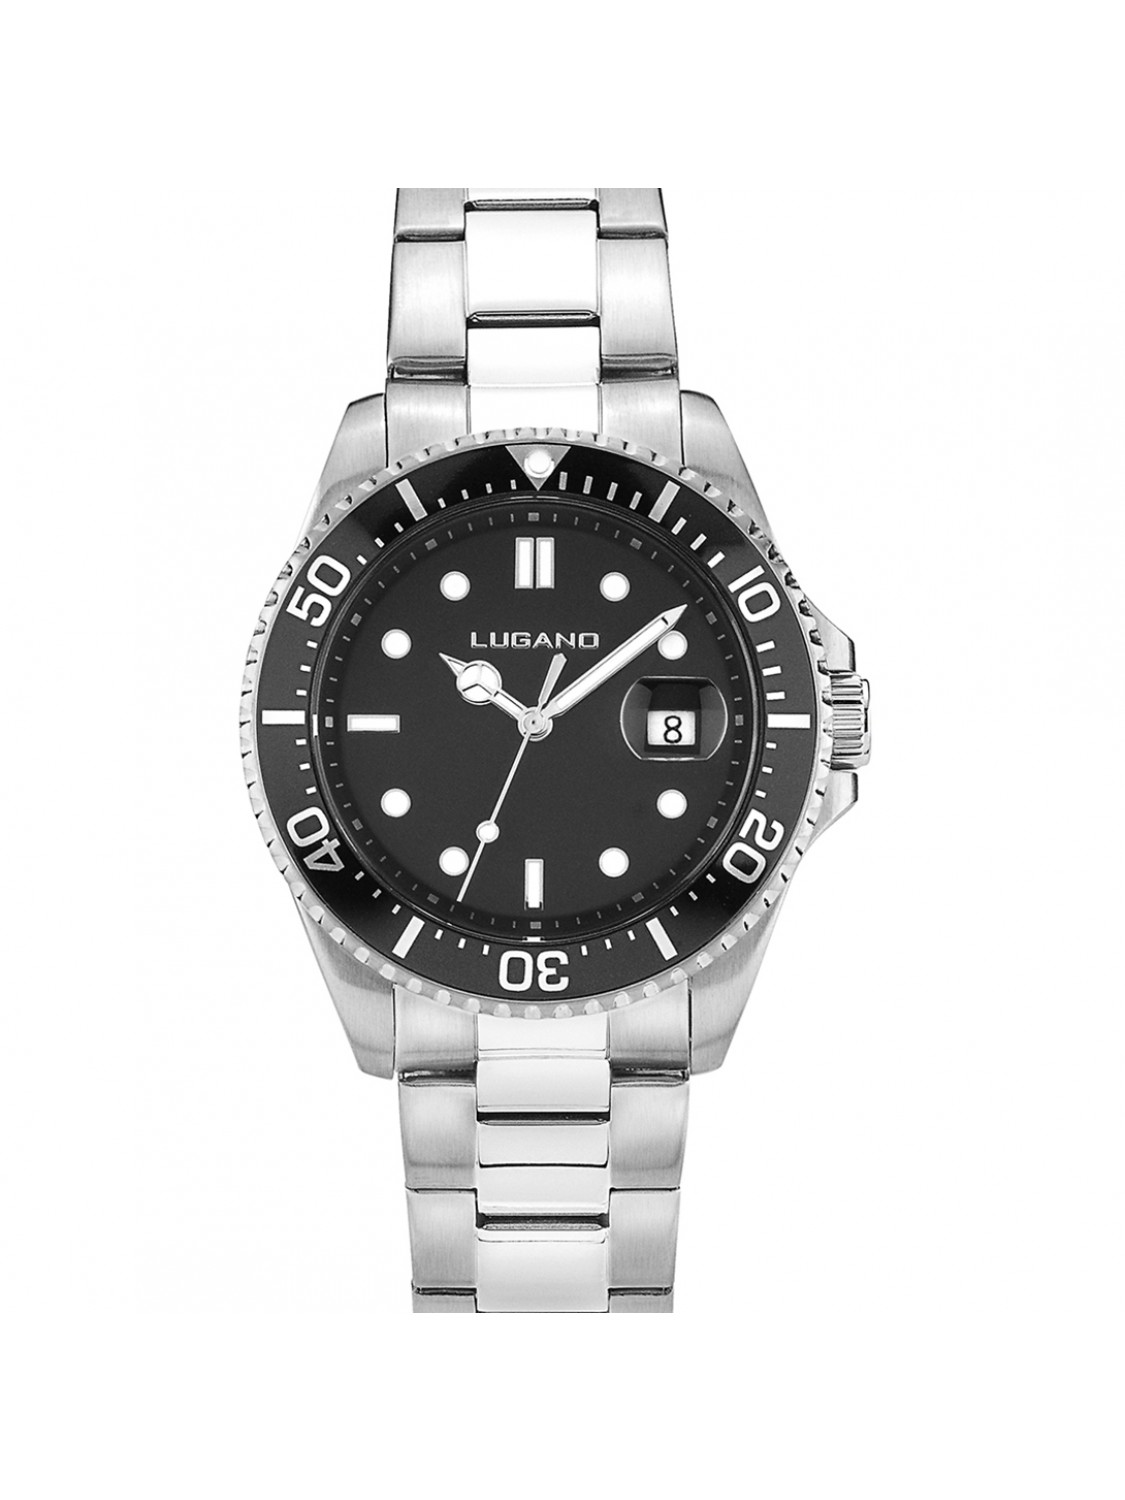 Lugano Diver Steel/Black-327